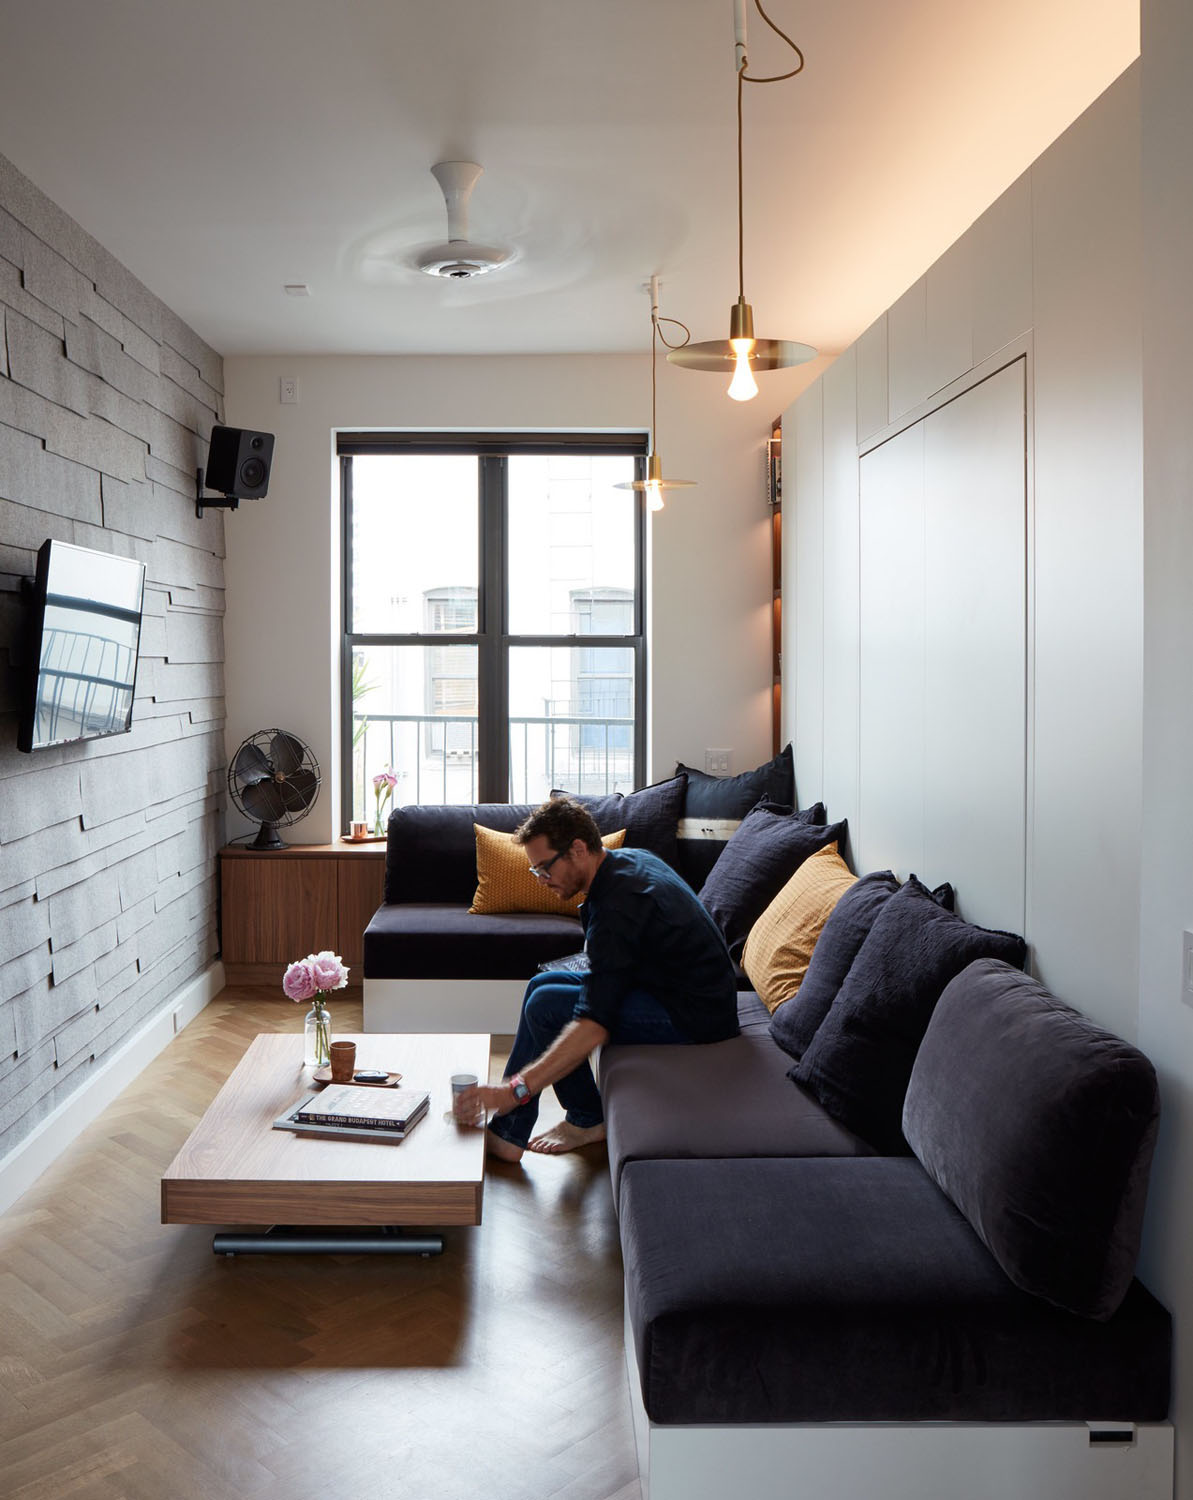 12 Picturesque Small Living Room Design: LifeEdited-NYC-Smart-Micro-Apartment_2